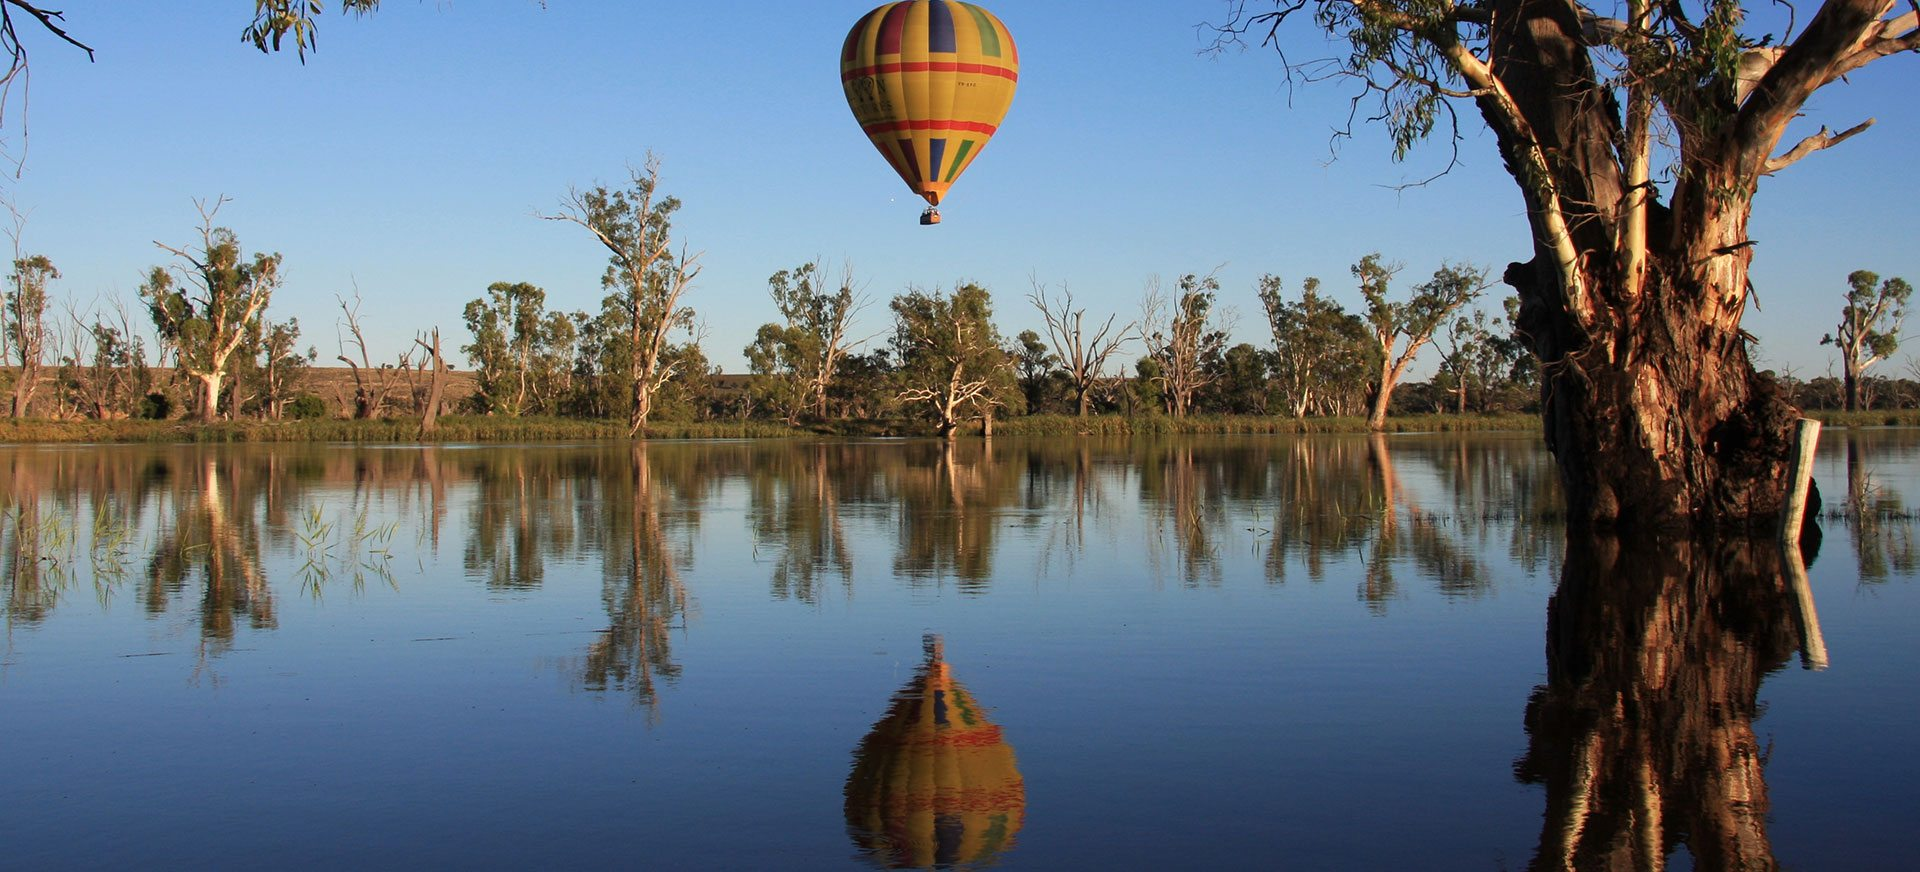 stunning day for a Balloon Adventures flight over Murray River